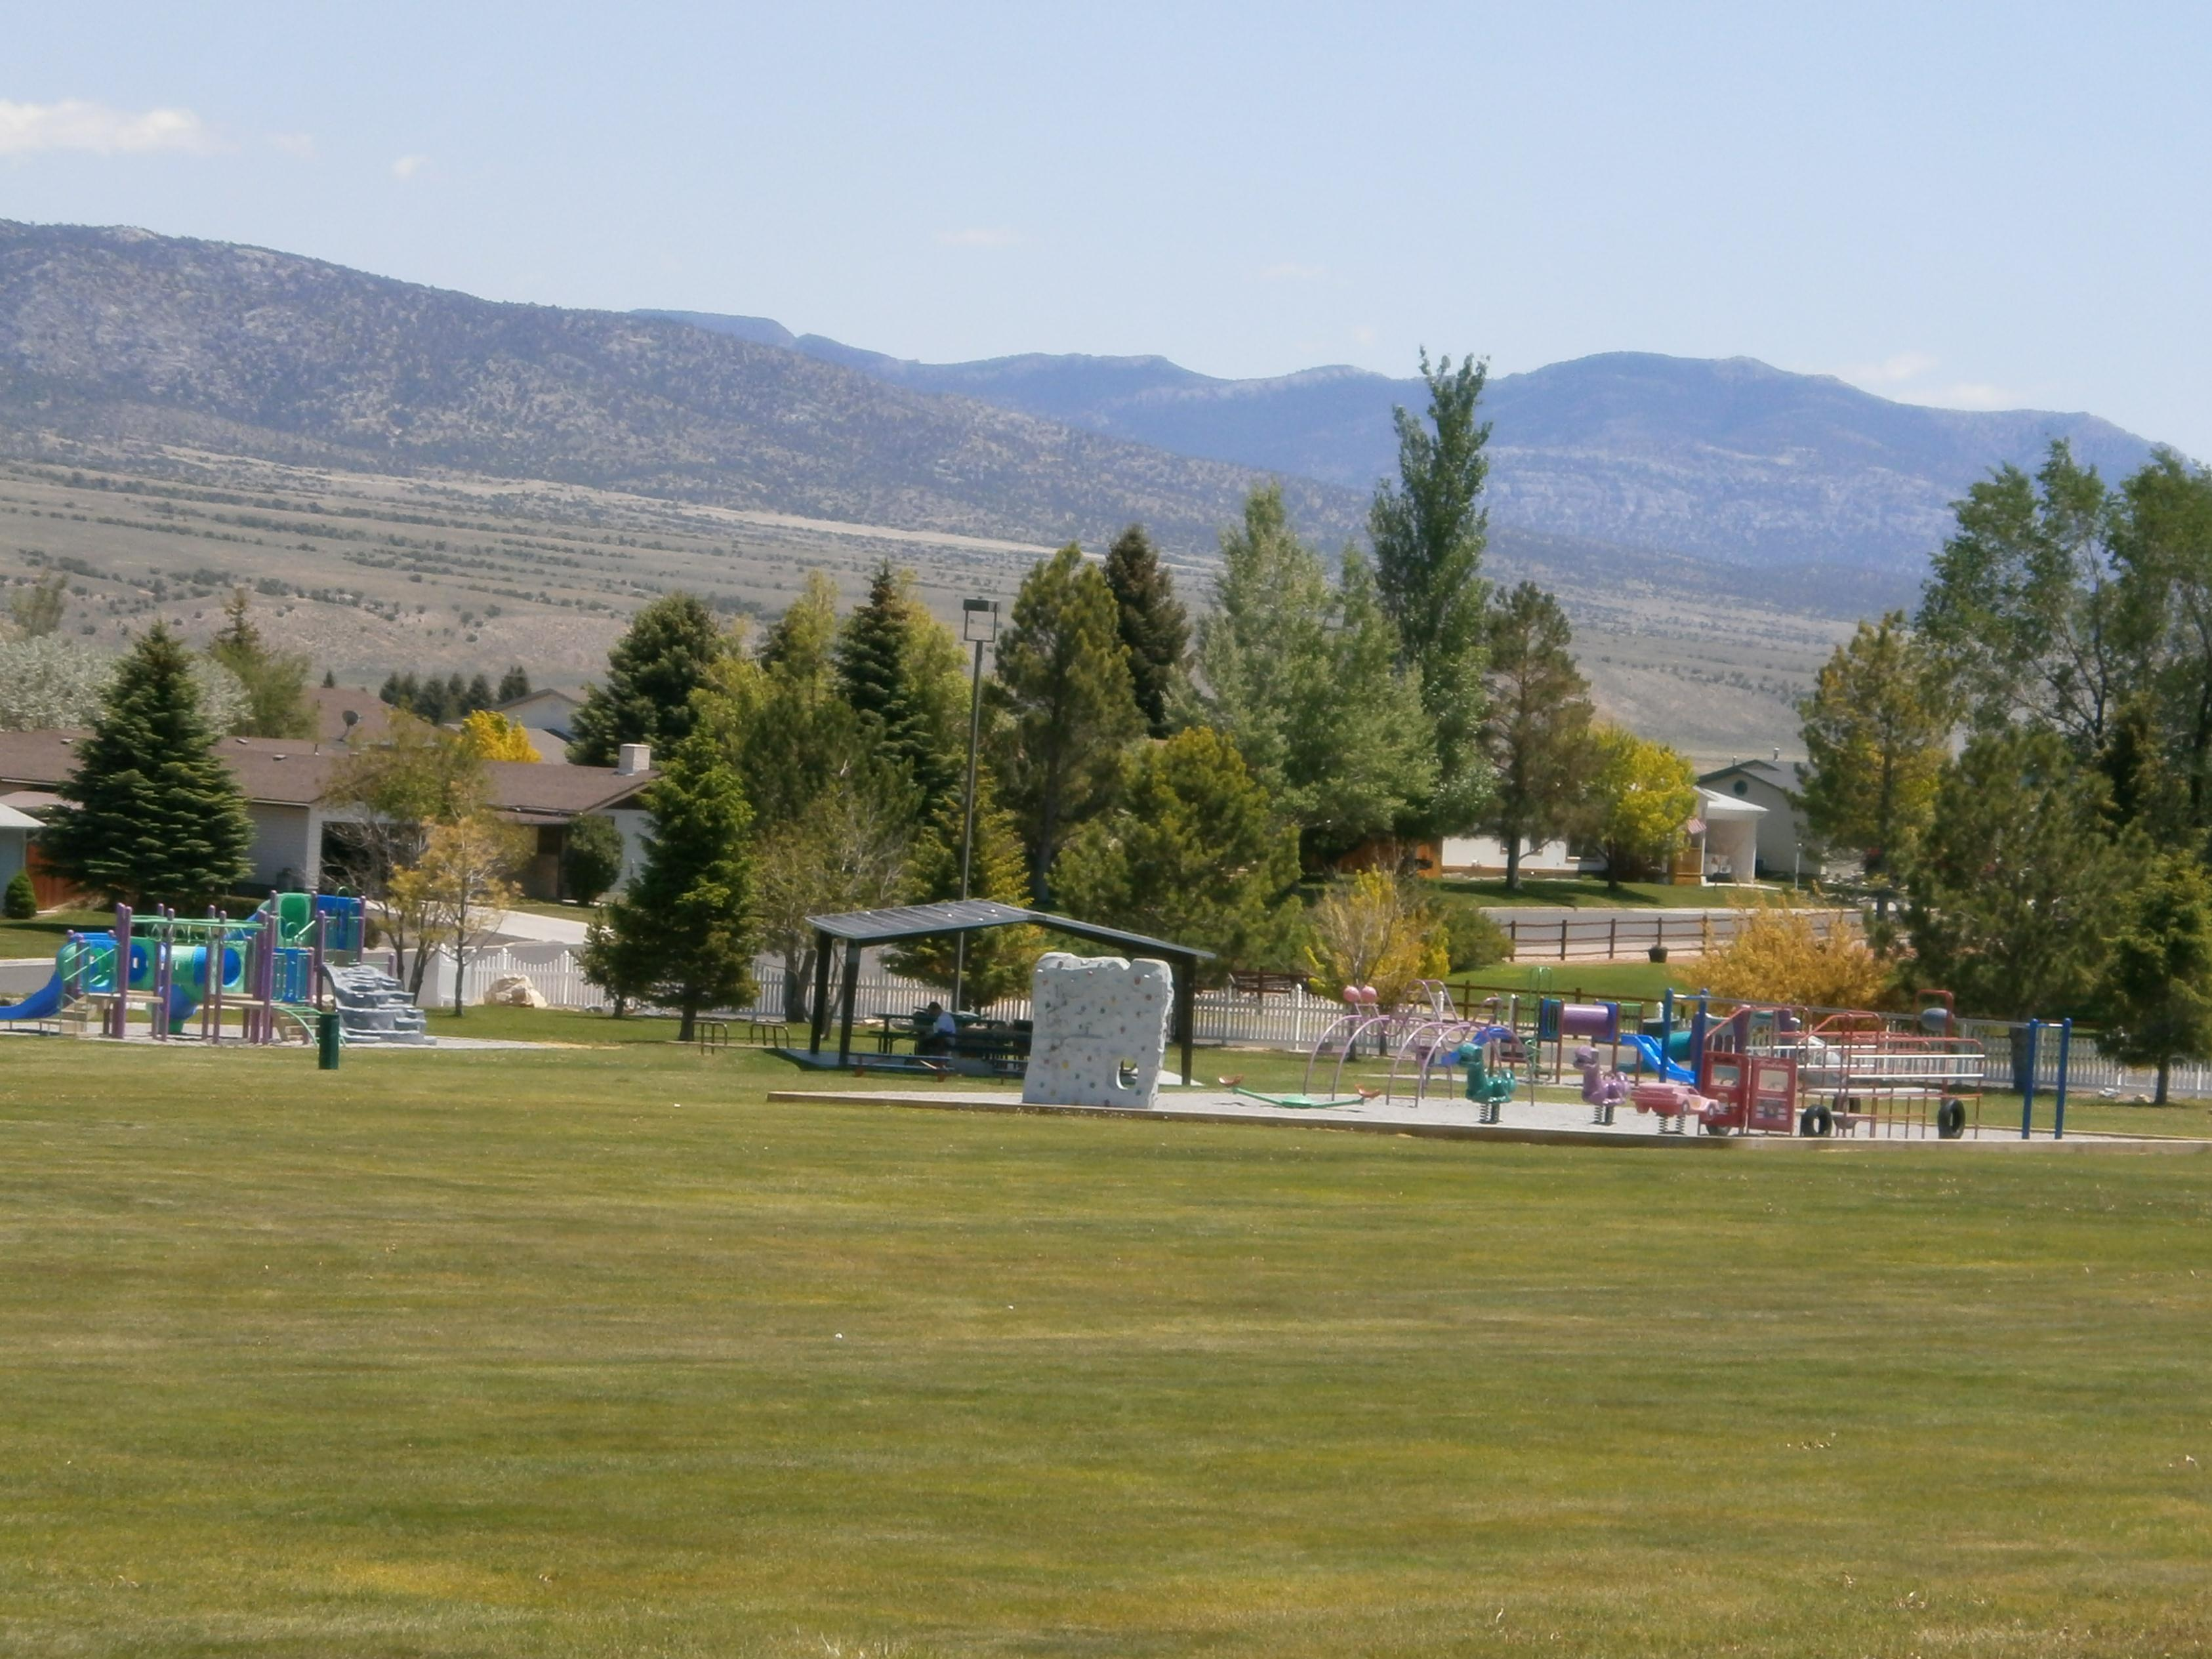 Large Grassy Area and Playground